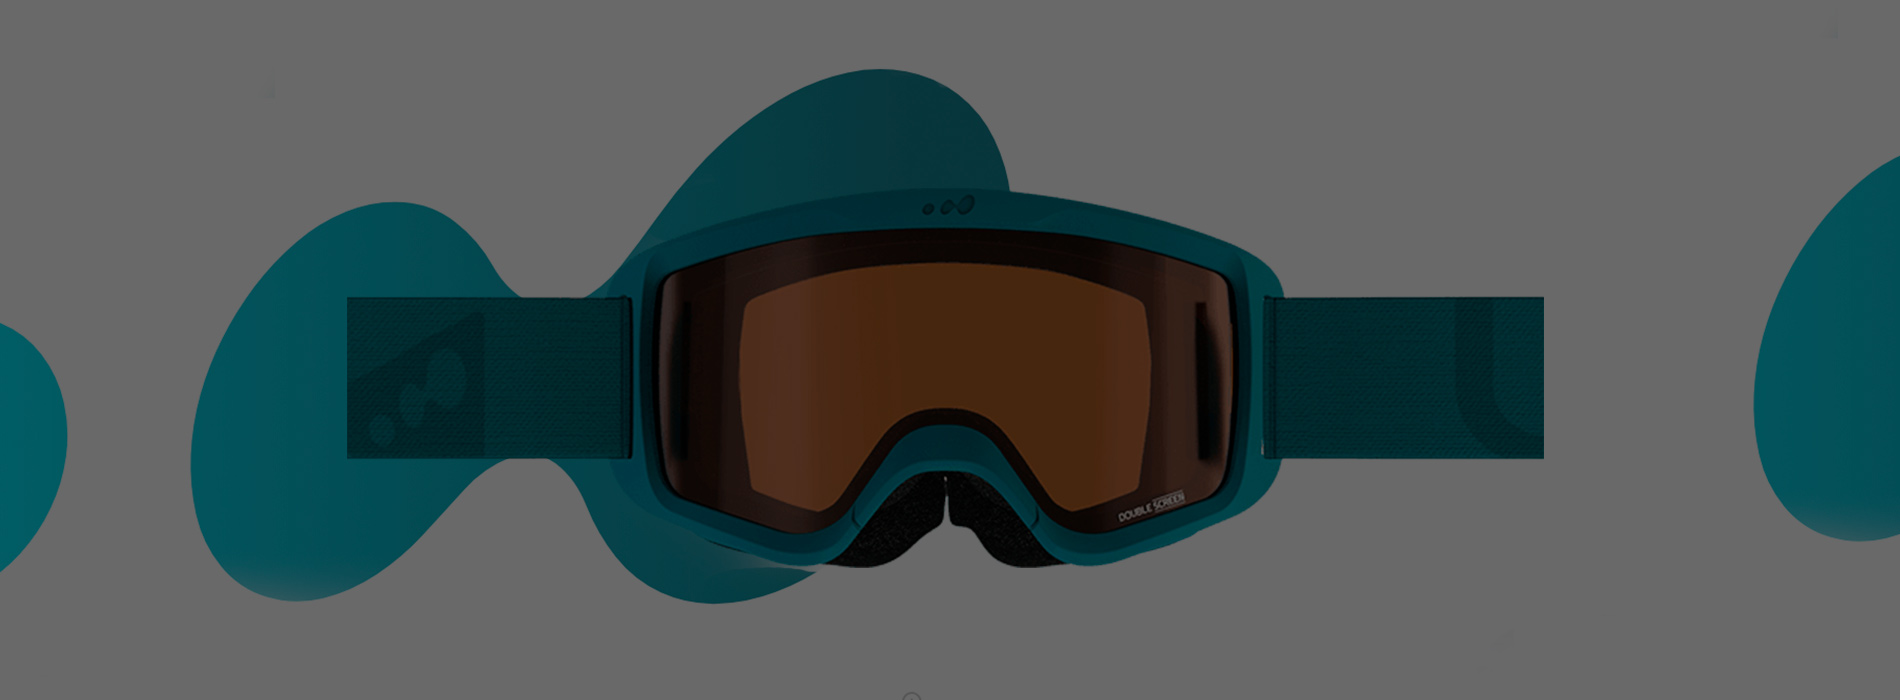 Wed'ze ski goggles collection